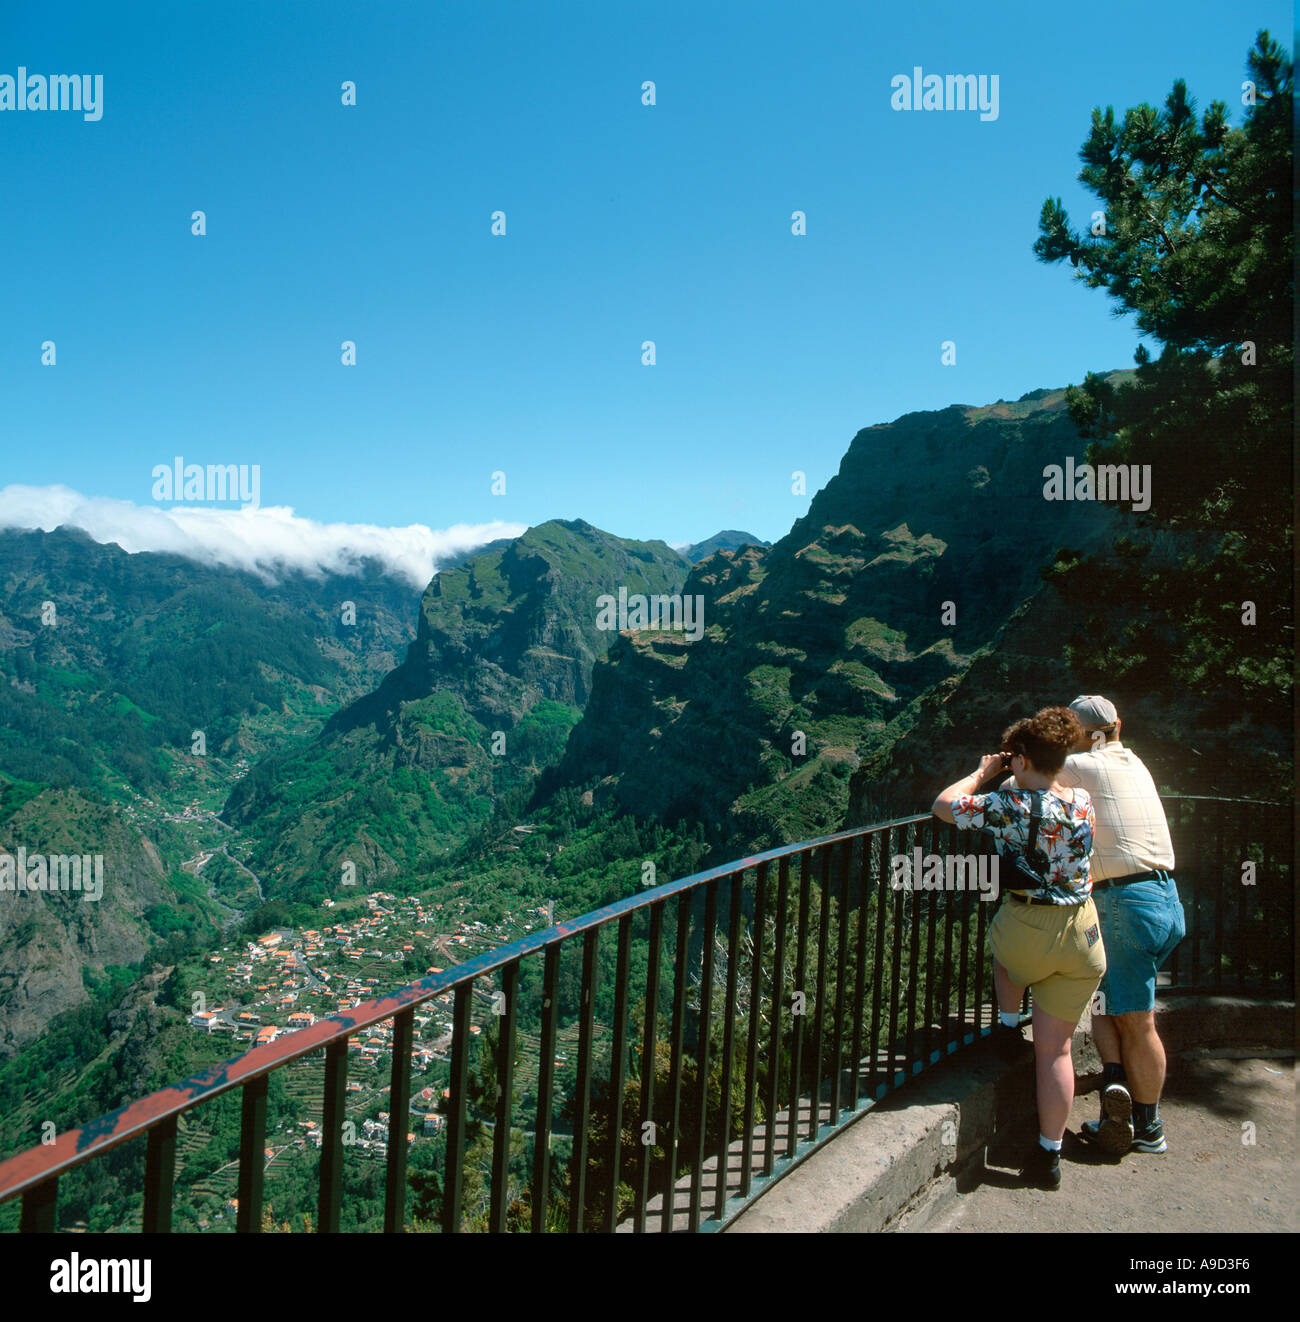 Couple at a viewpoint overlooking the mountain village of Curral das Freiras, Madeira, Portugal - Stock Image